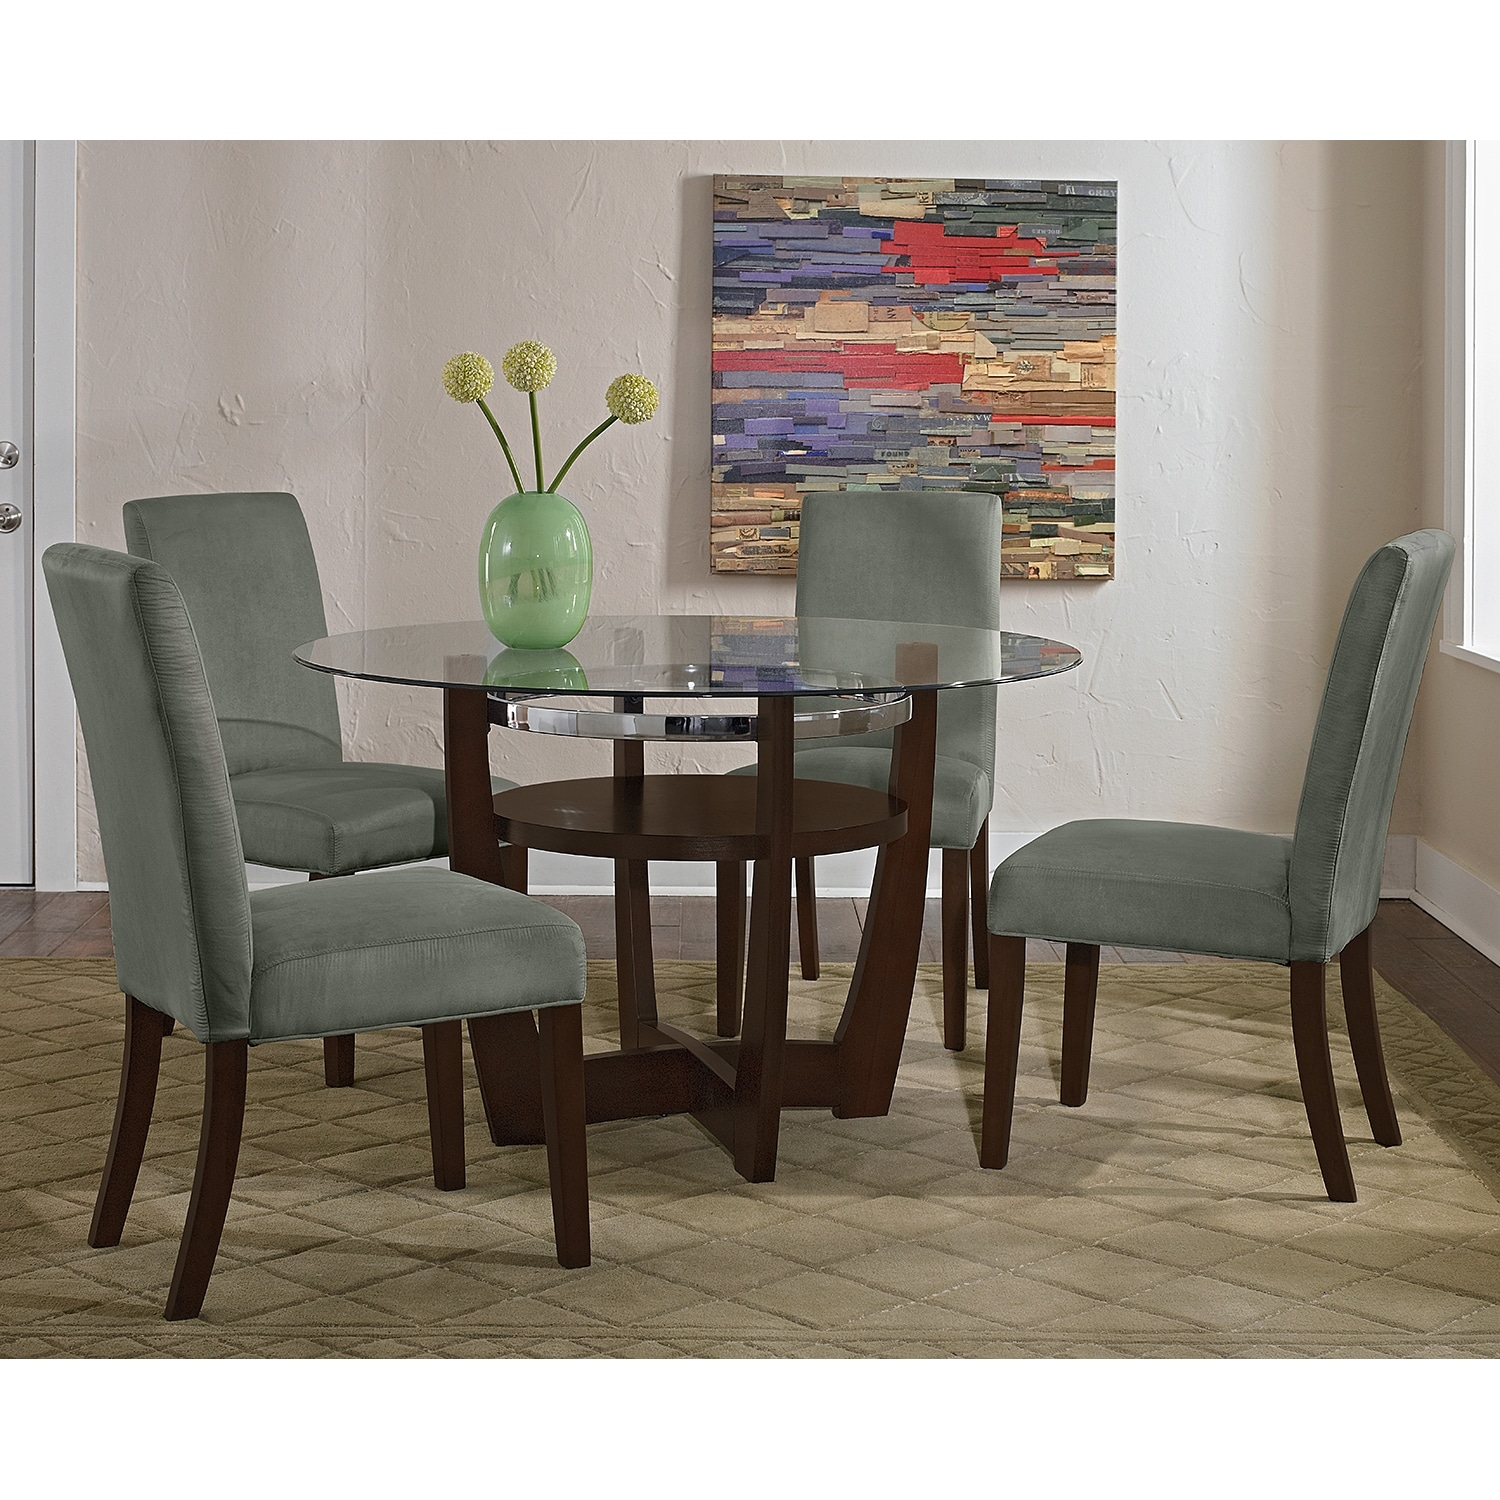 Sage Green Dining Room: Alcove Sage Dining Room Chair